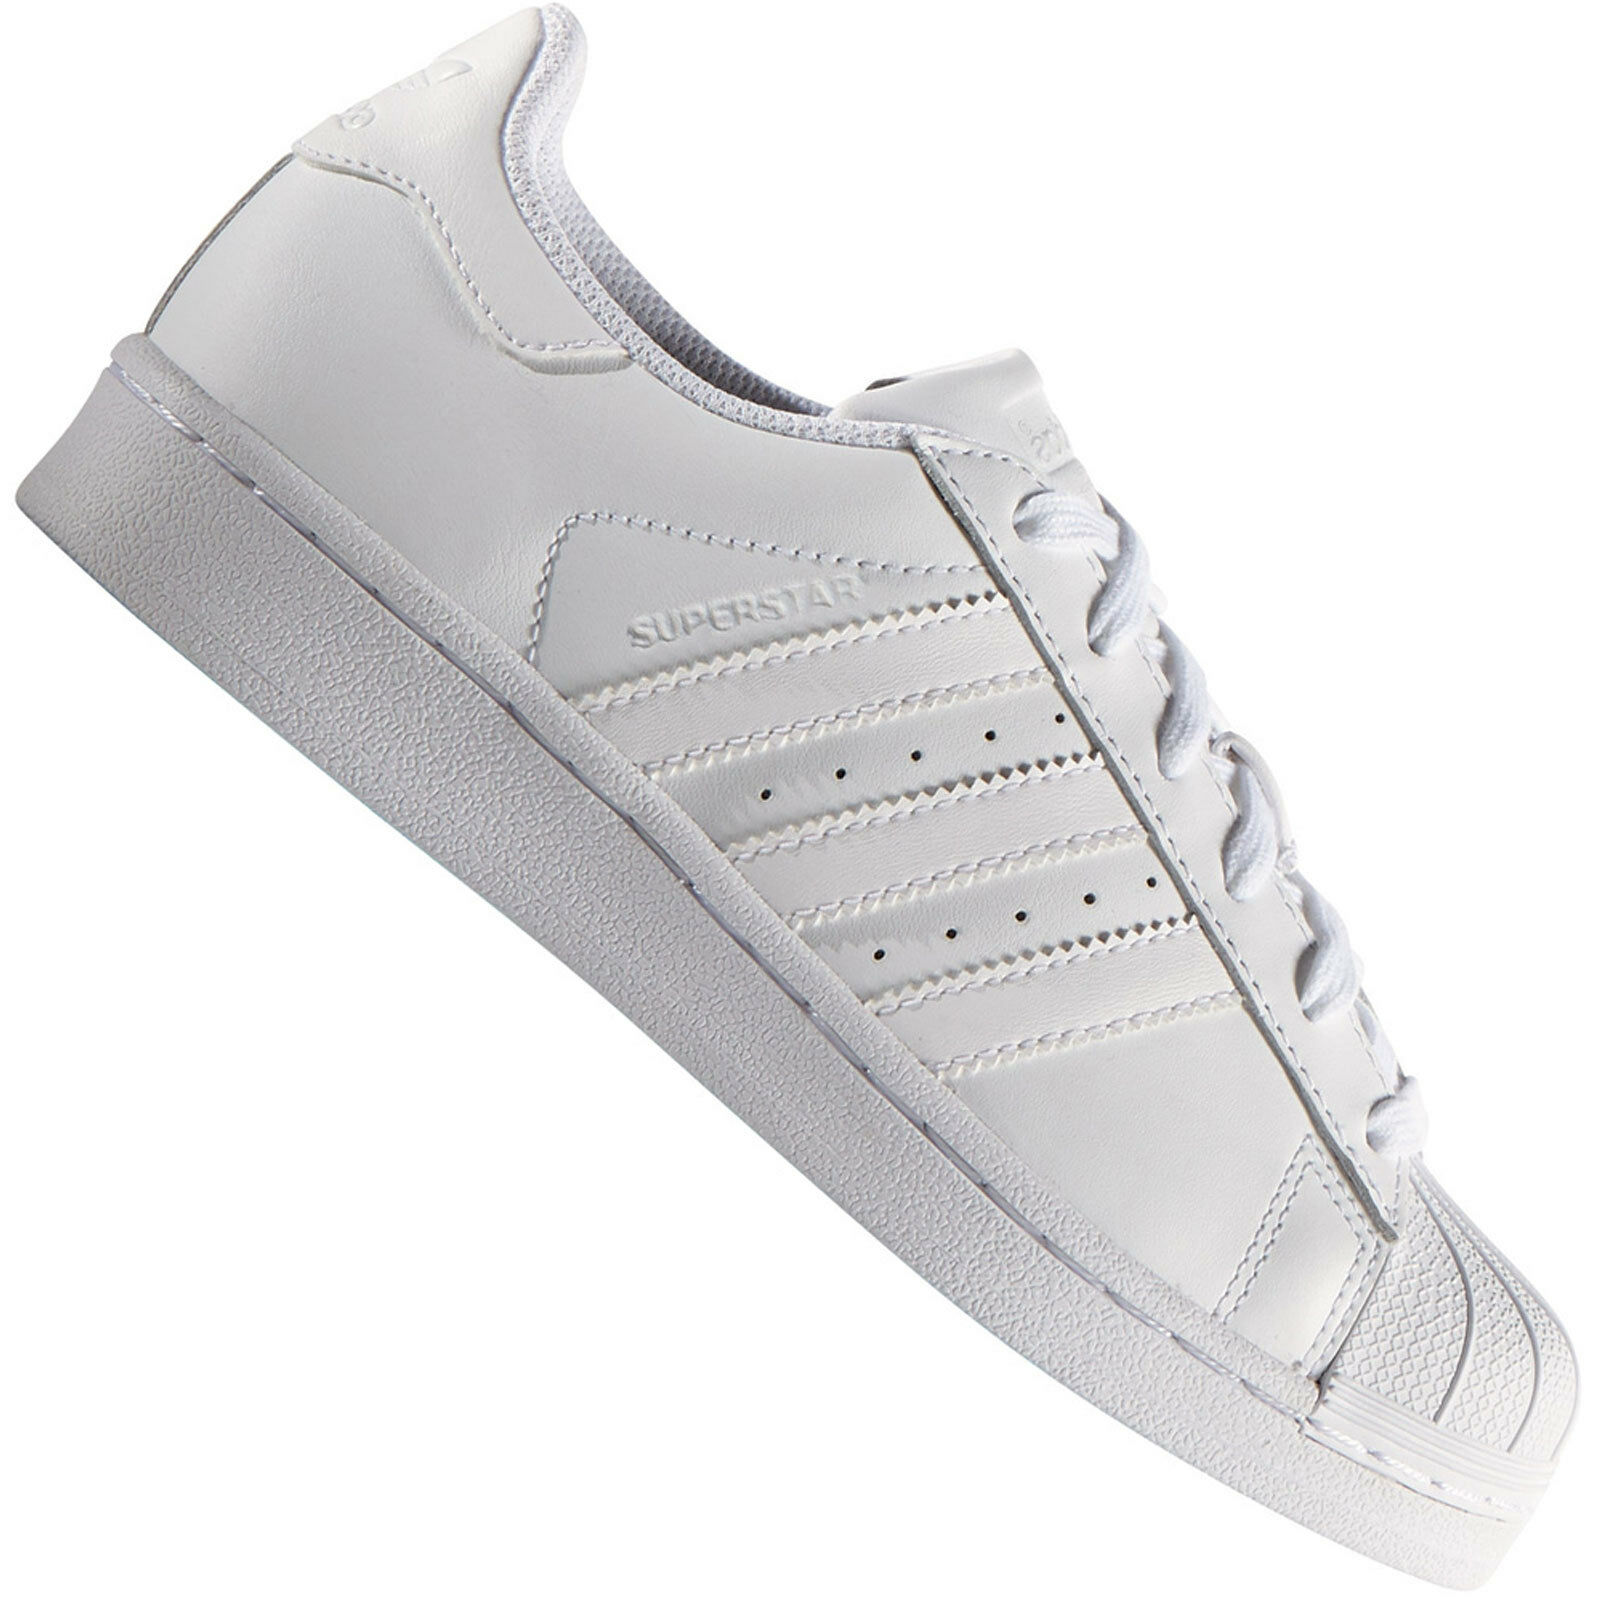 Adidas Low Superstar Foundation Unisex Trainers Low Adidas Shoes Sneakers Shoes ee4f92